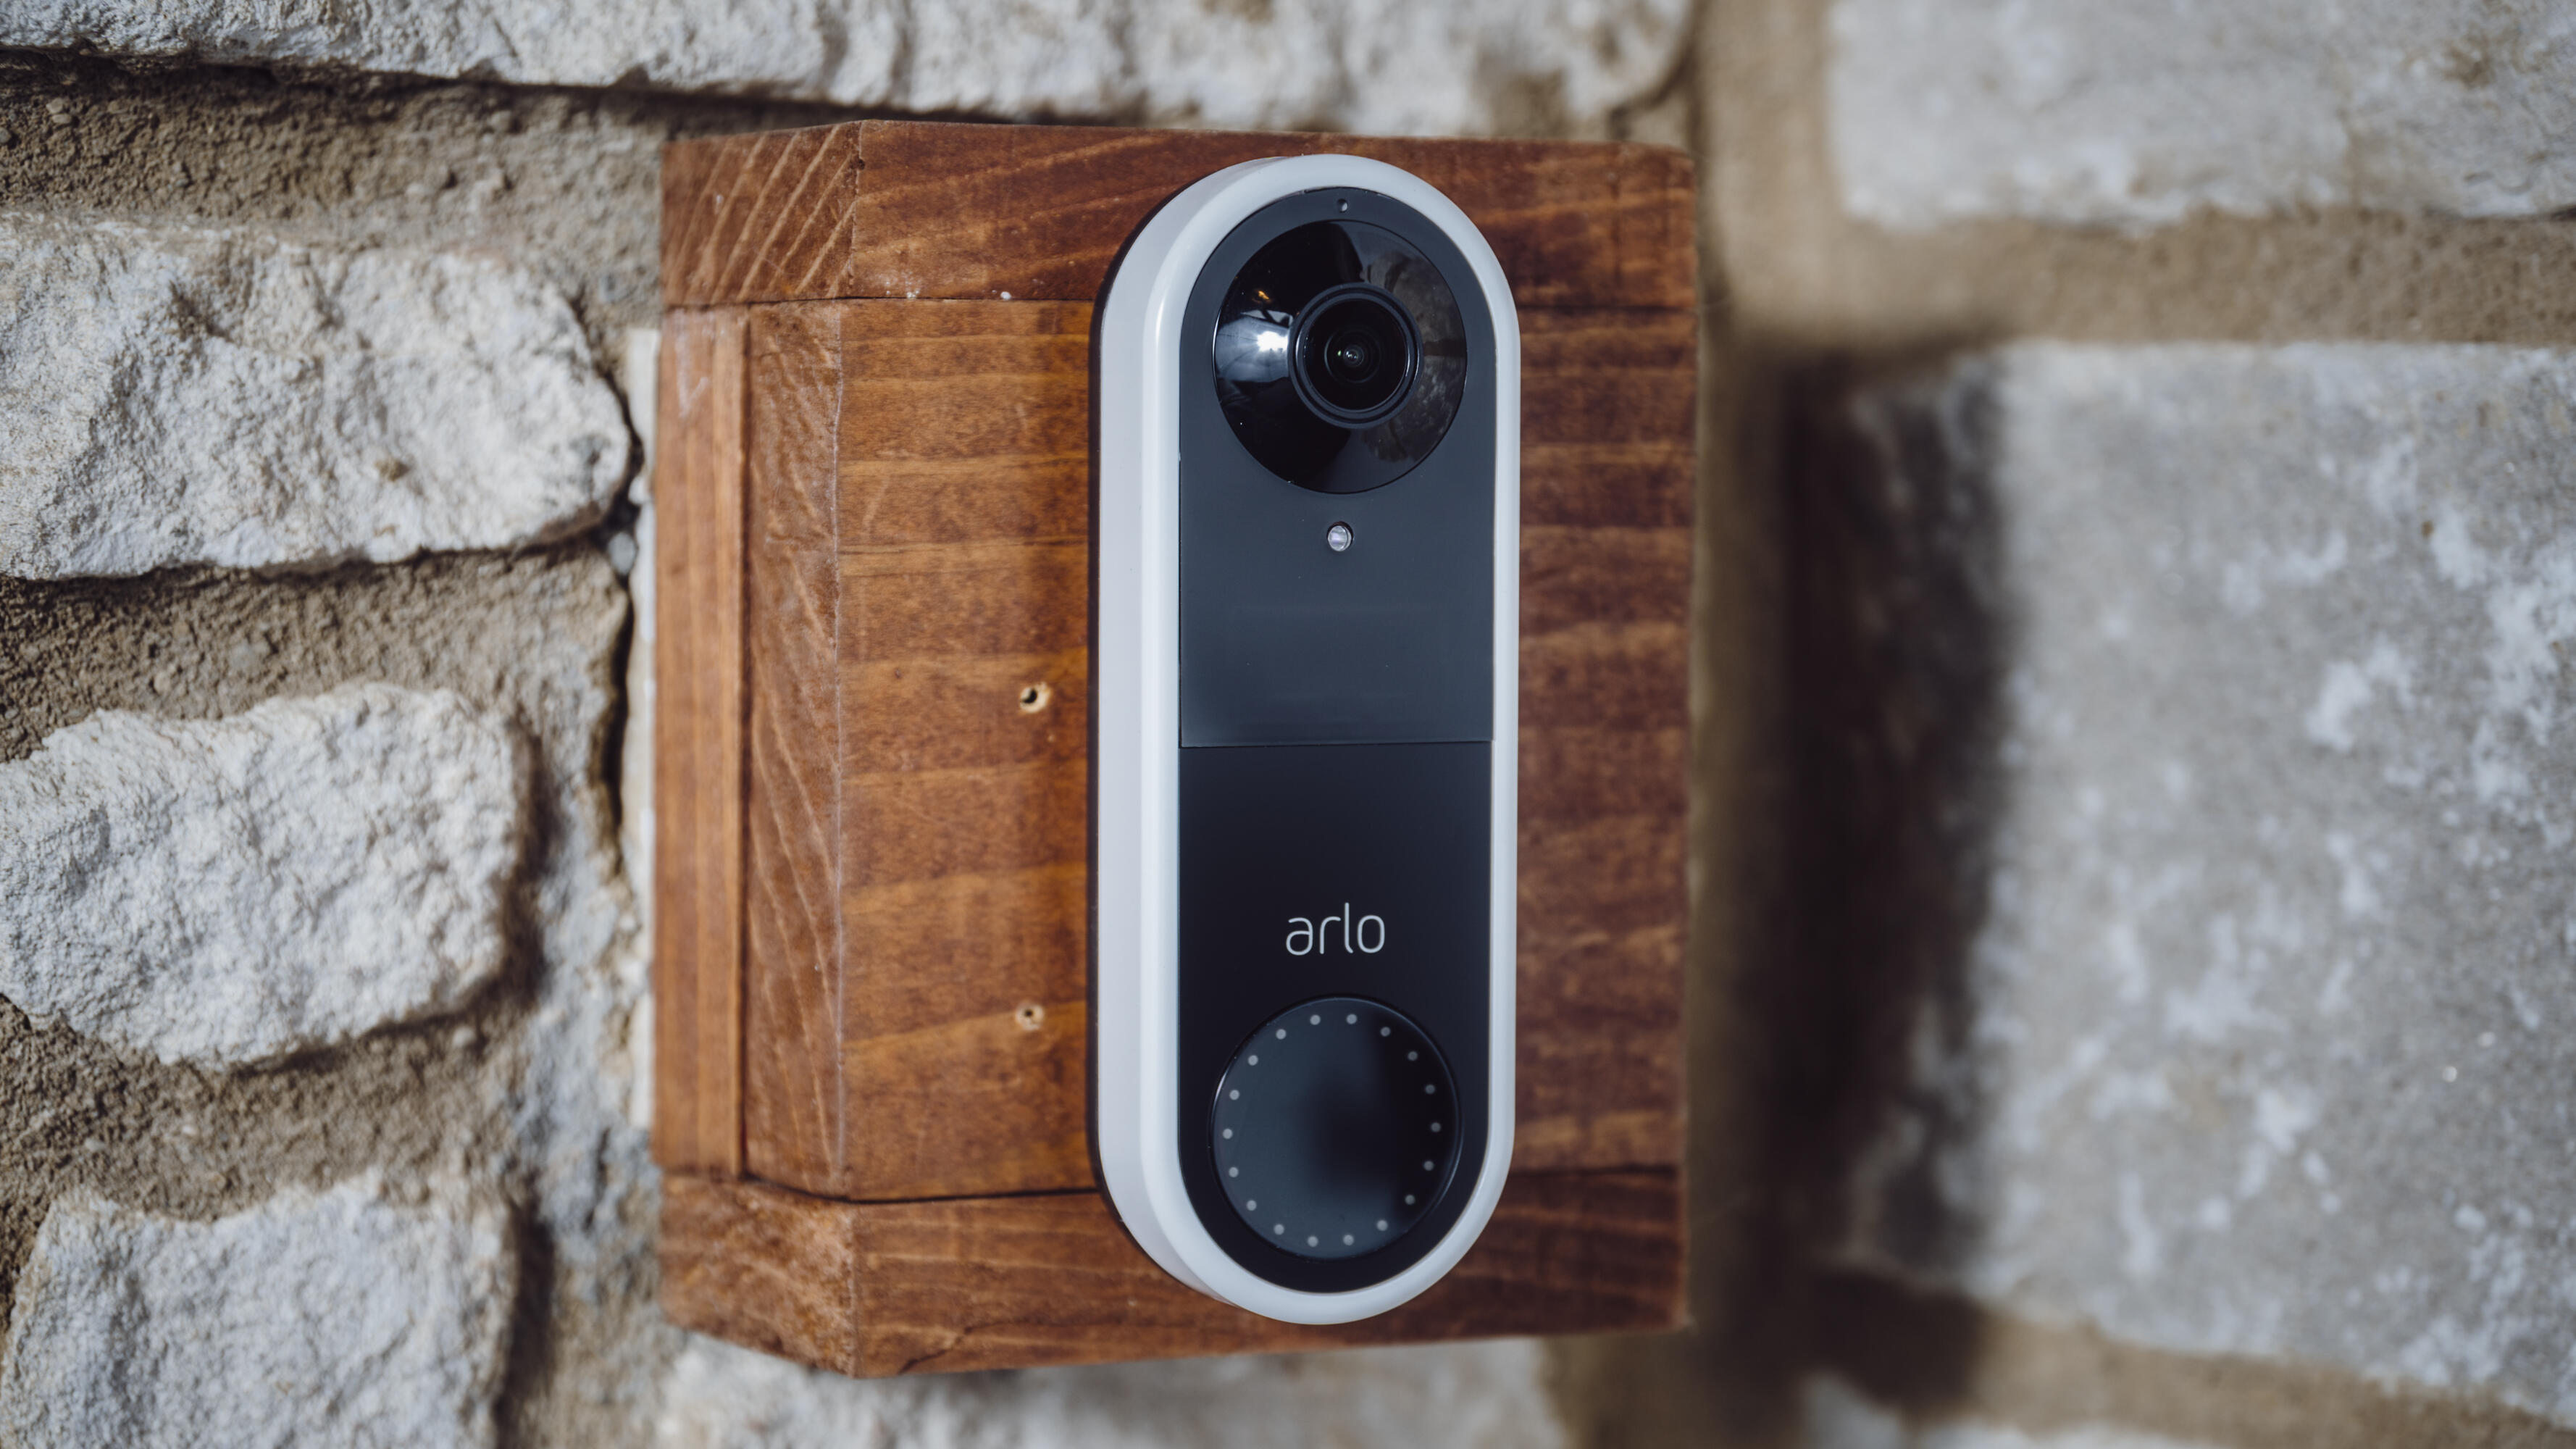 arlo-video-doorbell-product-photos-1